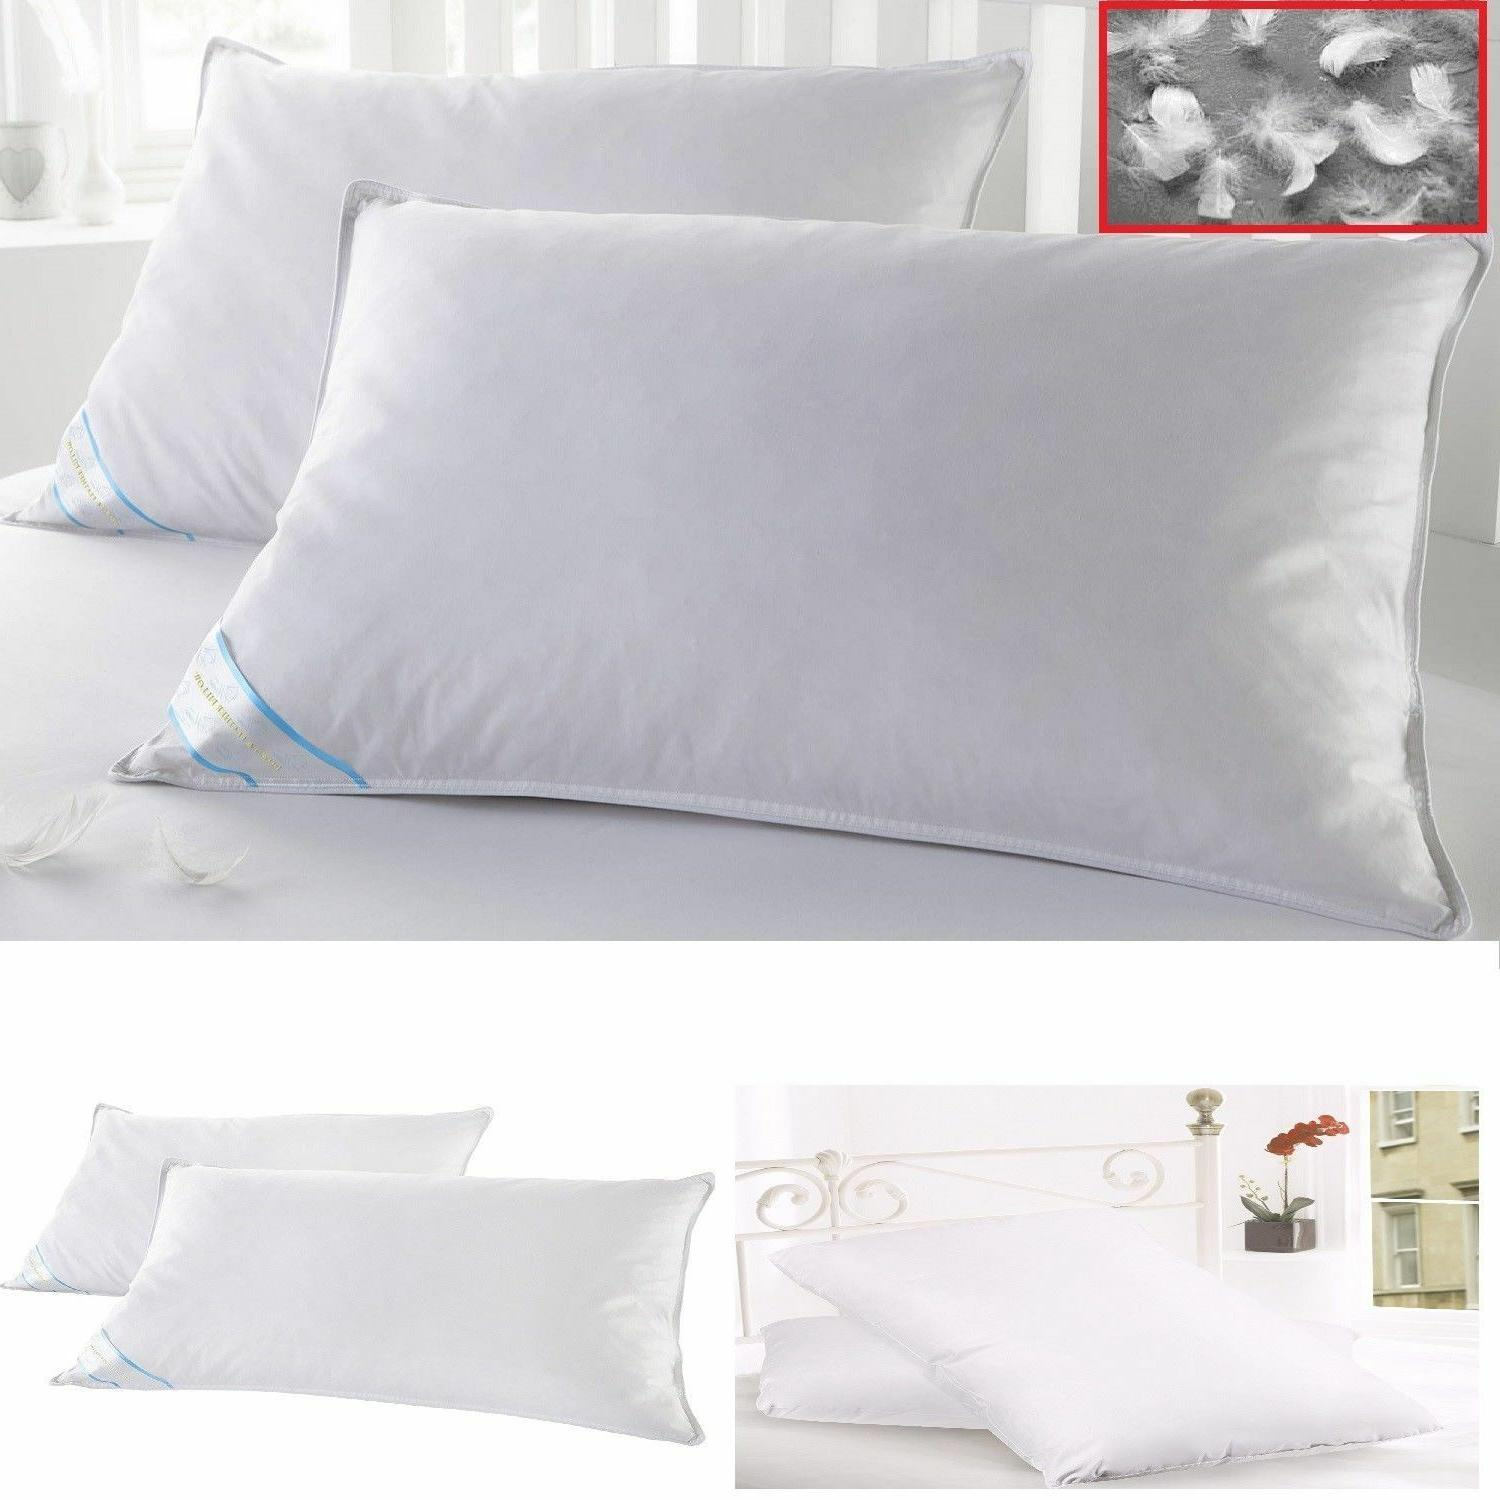 2 King Size Pillows Goose Down Feathers Bed Set Luxury Pillo